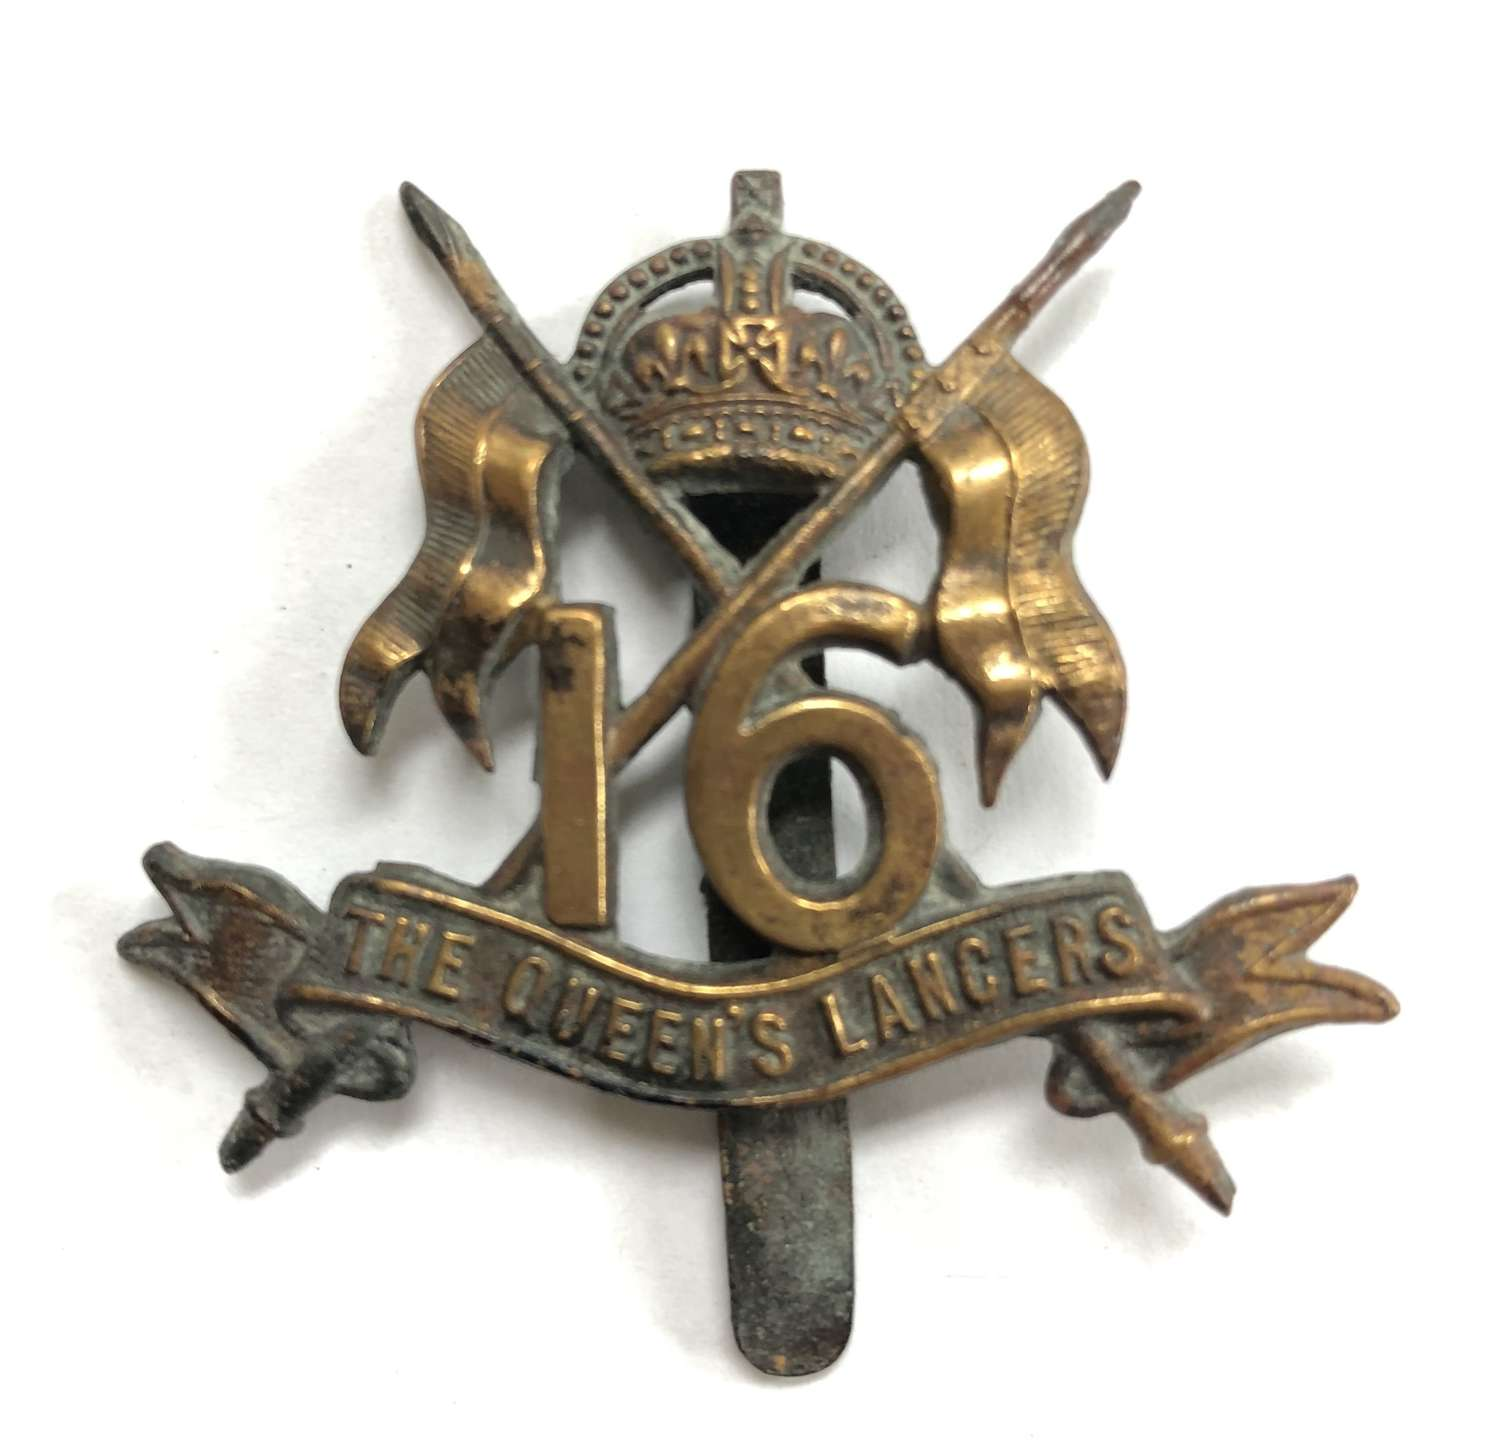 16th The Queen's Lancers all brass economy issue circa 1916-18